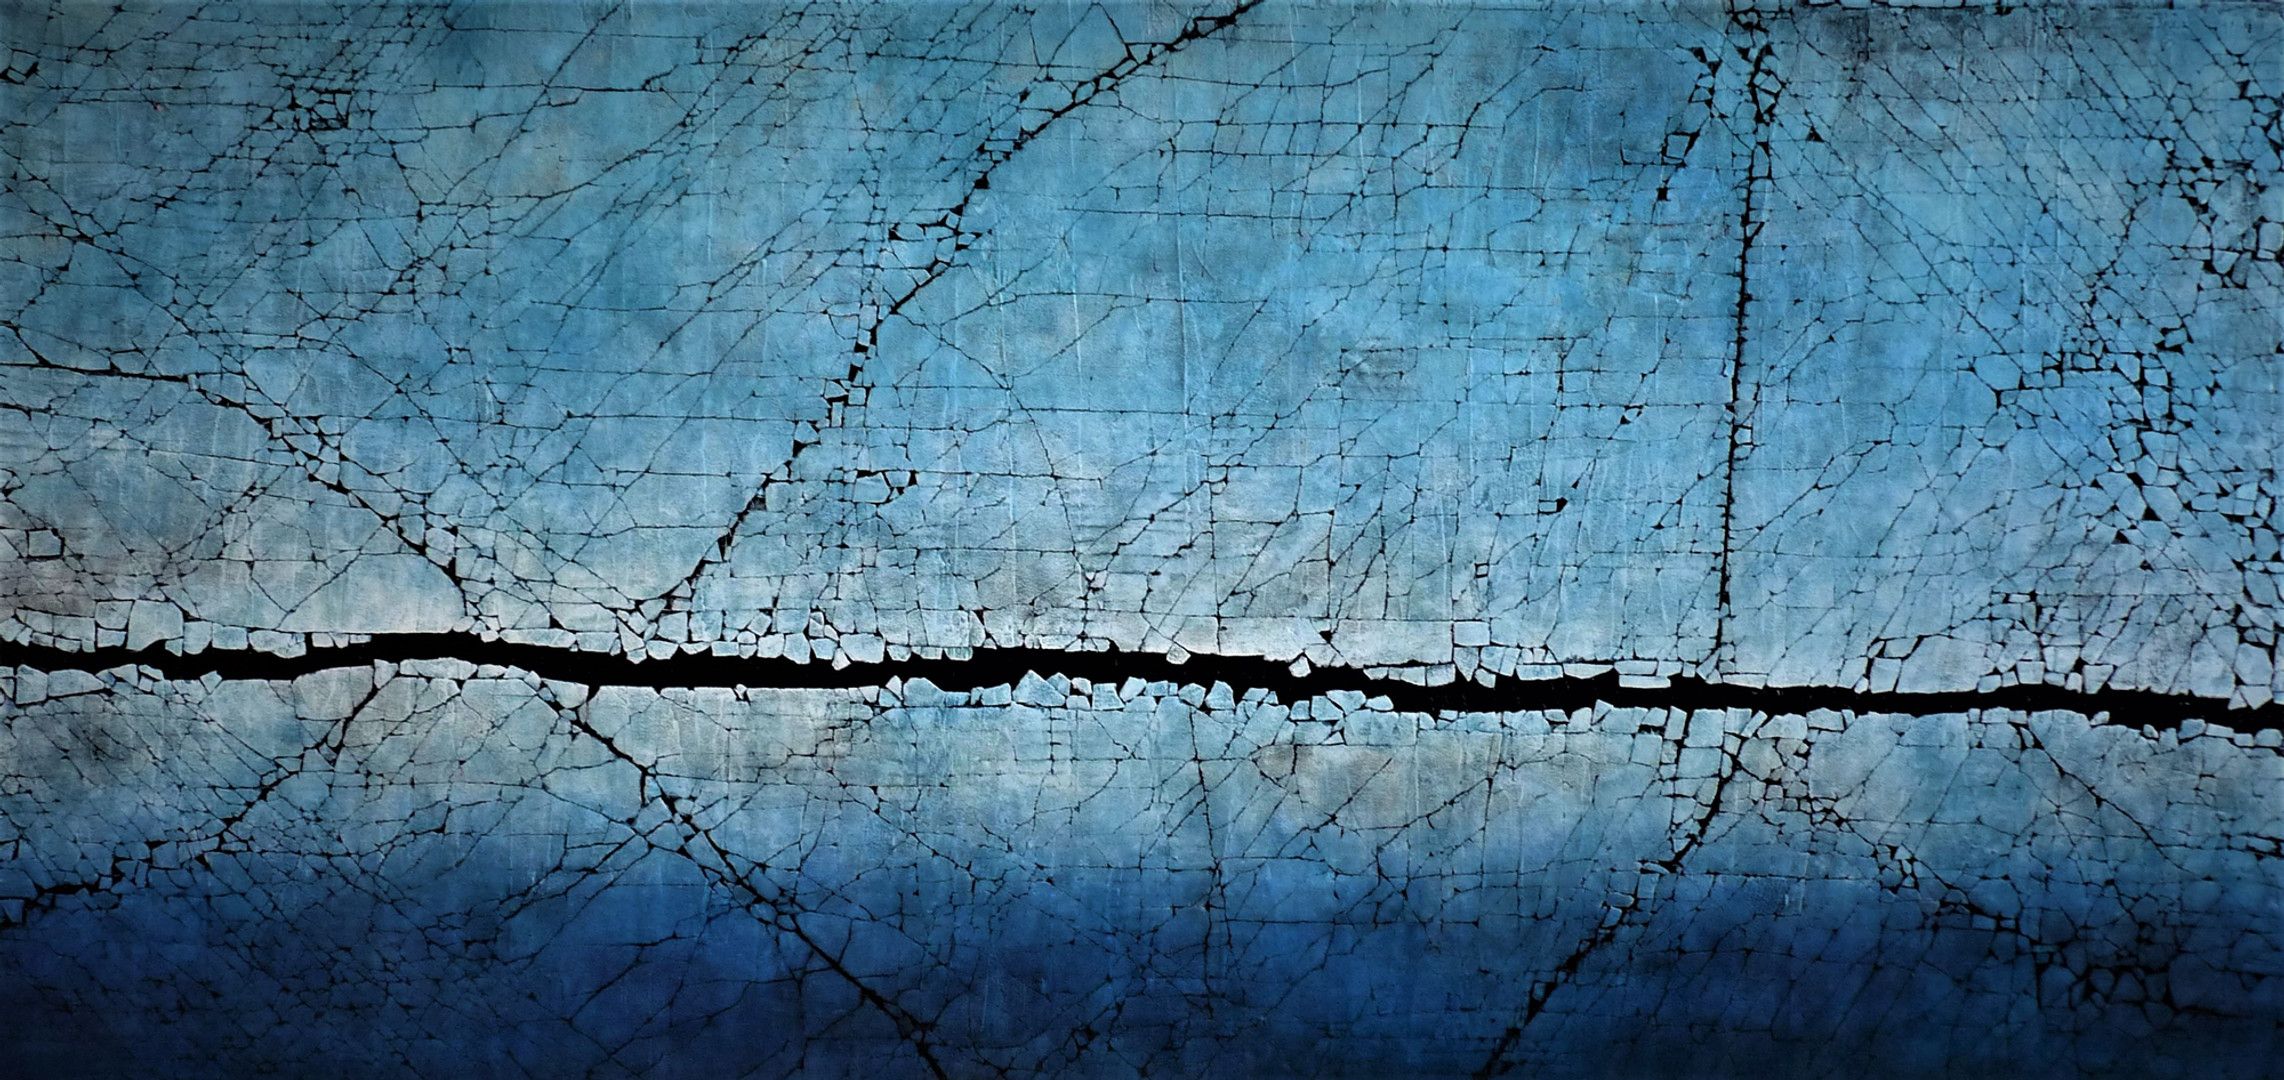 "Ebb and Flow Series: Cobalt and Ultramarine Blue. Mixed media. 33"" x 68"". 2020 SOLD"